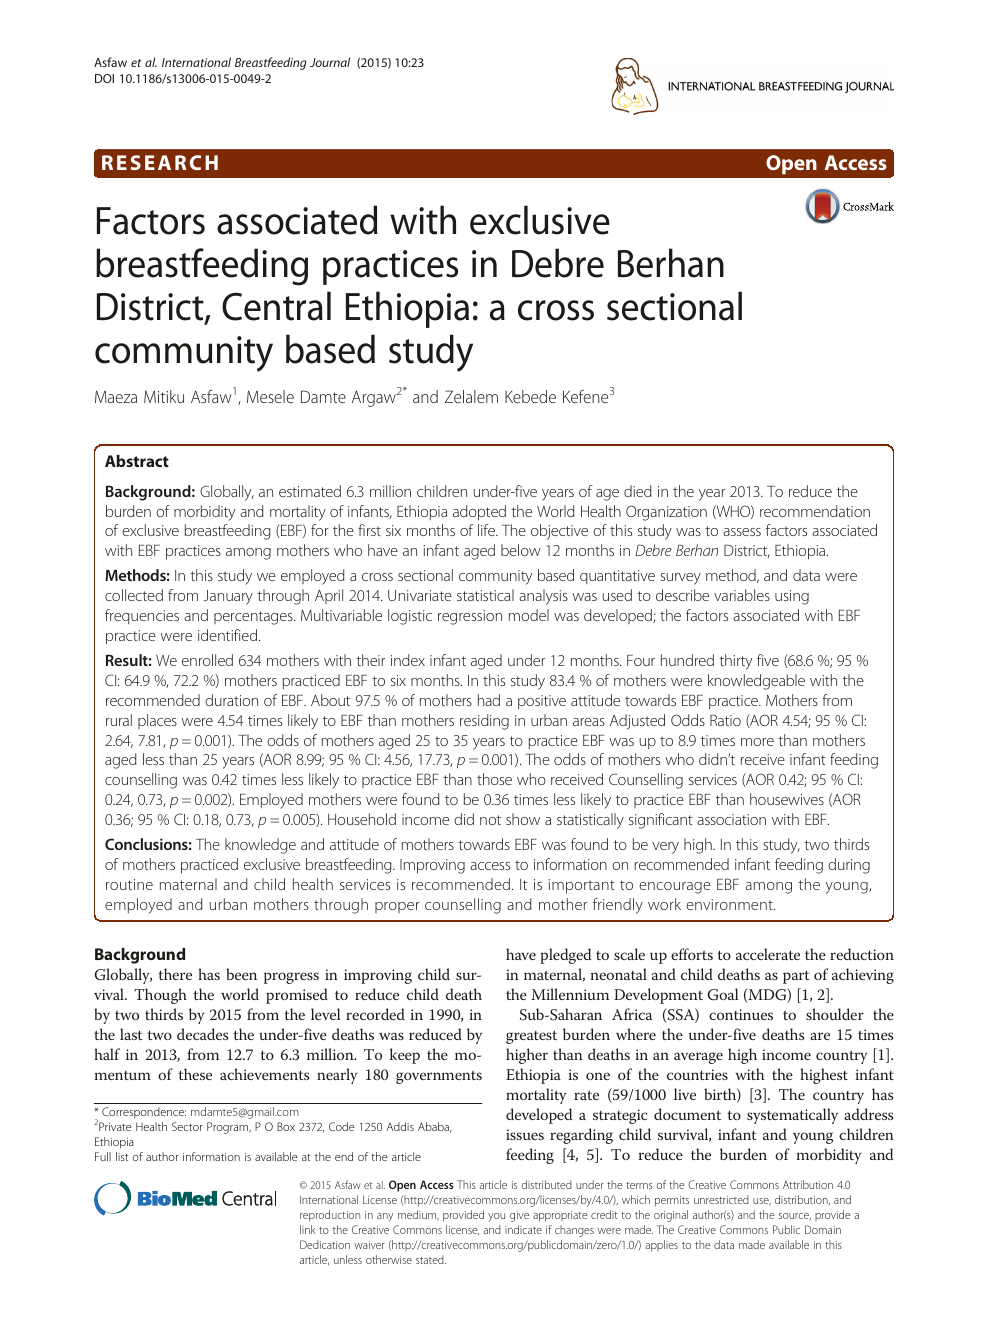 Factors associated with exclusive breastfeeding practices in Debre